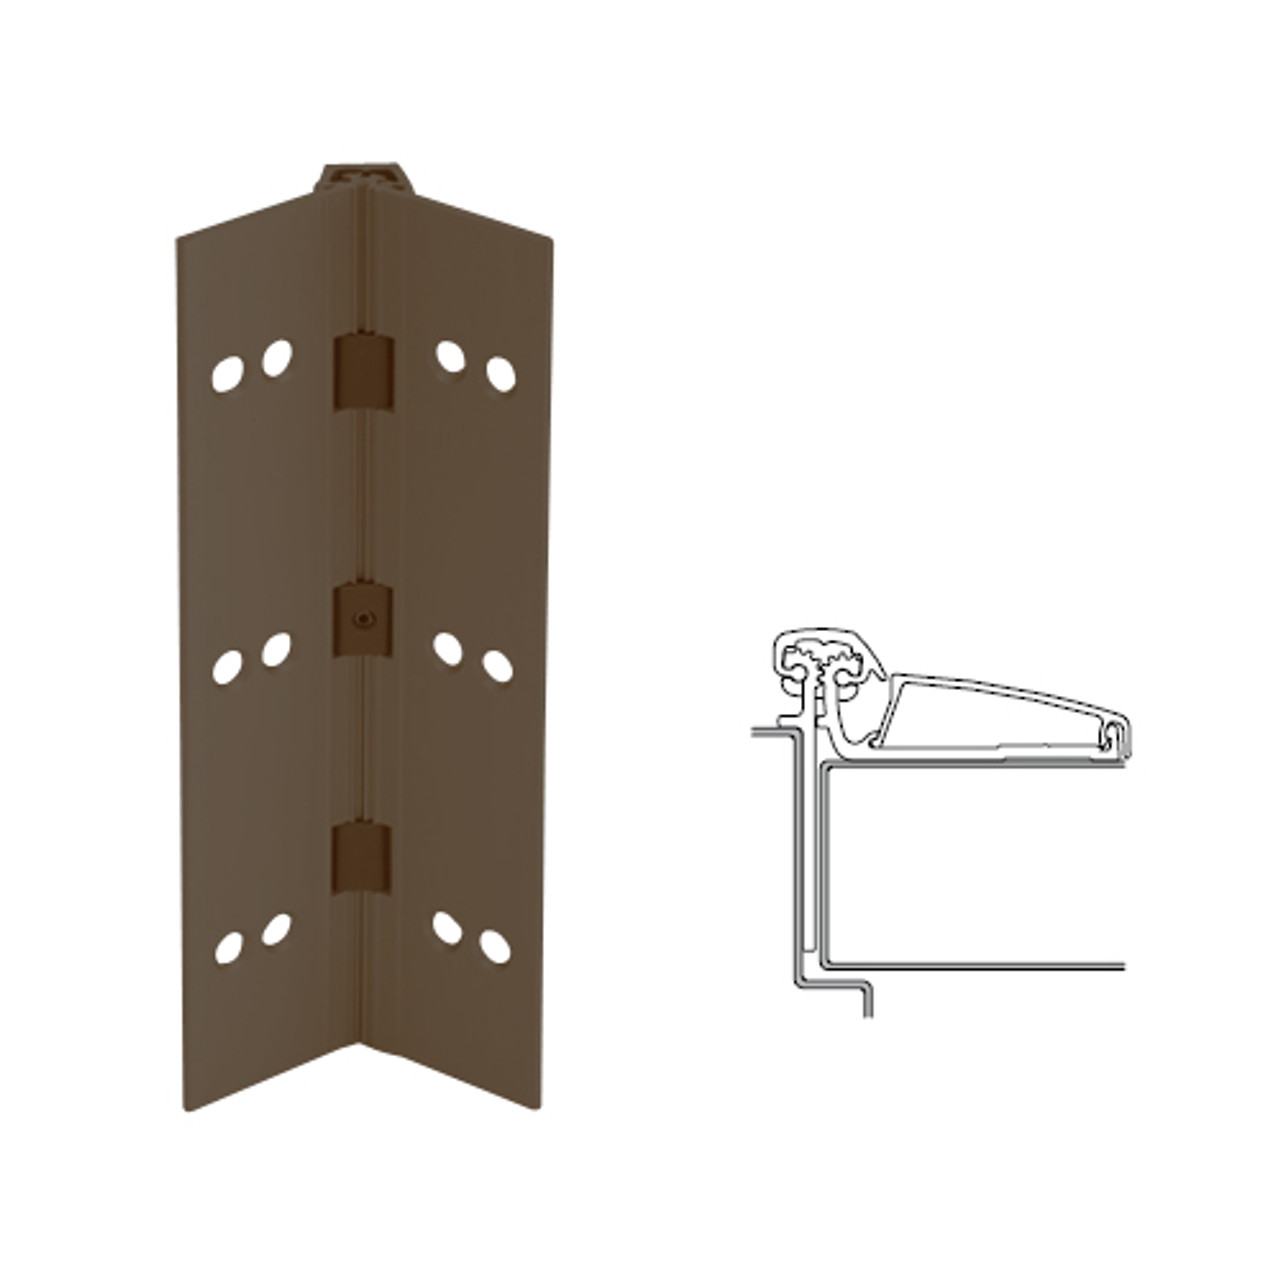 046XY-313AN-95 IVES Adjustable Half Surface Continuous Geared Hinges in Dark Bronze Anodized